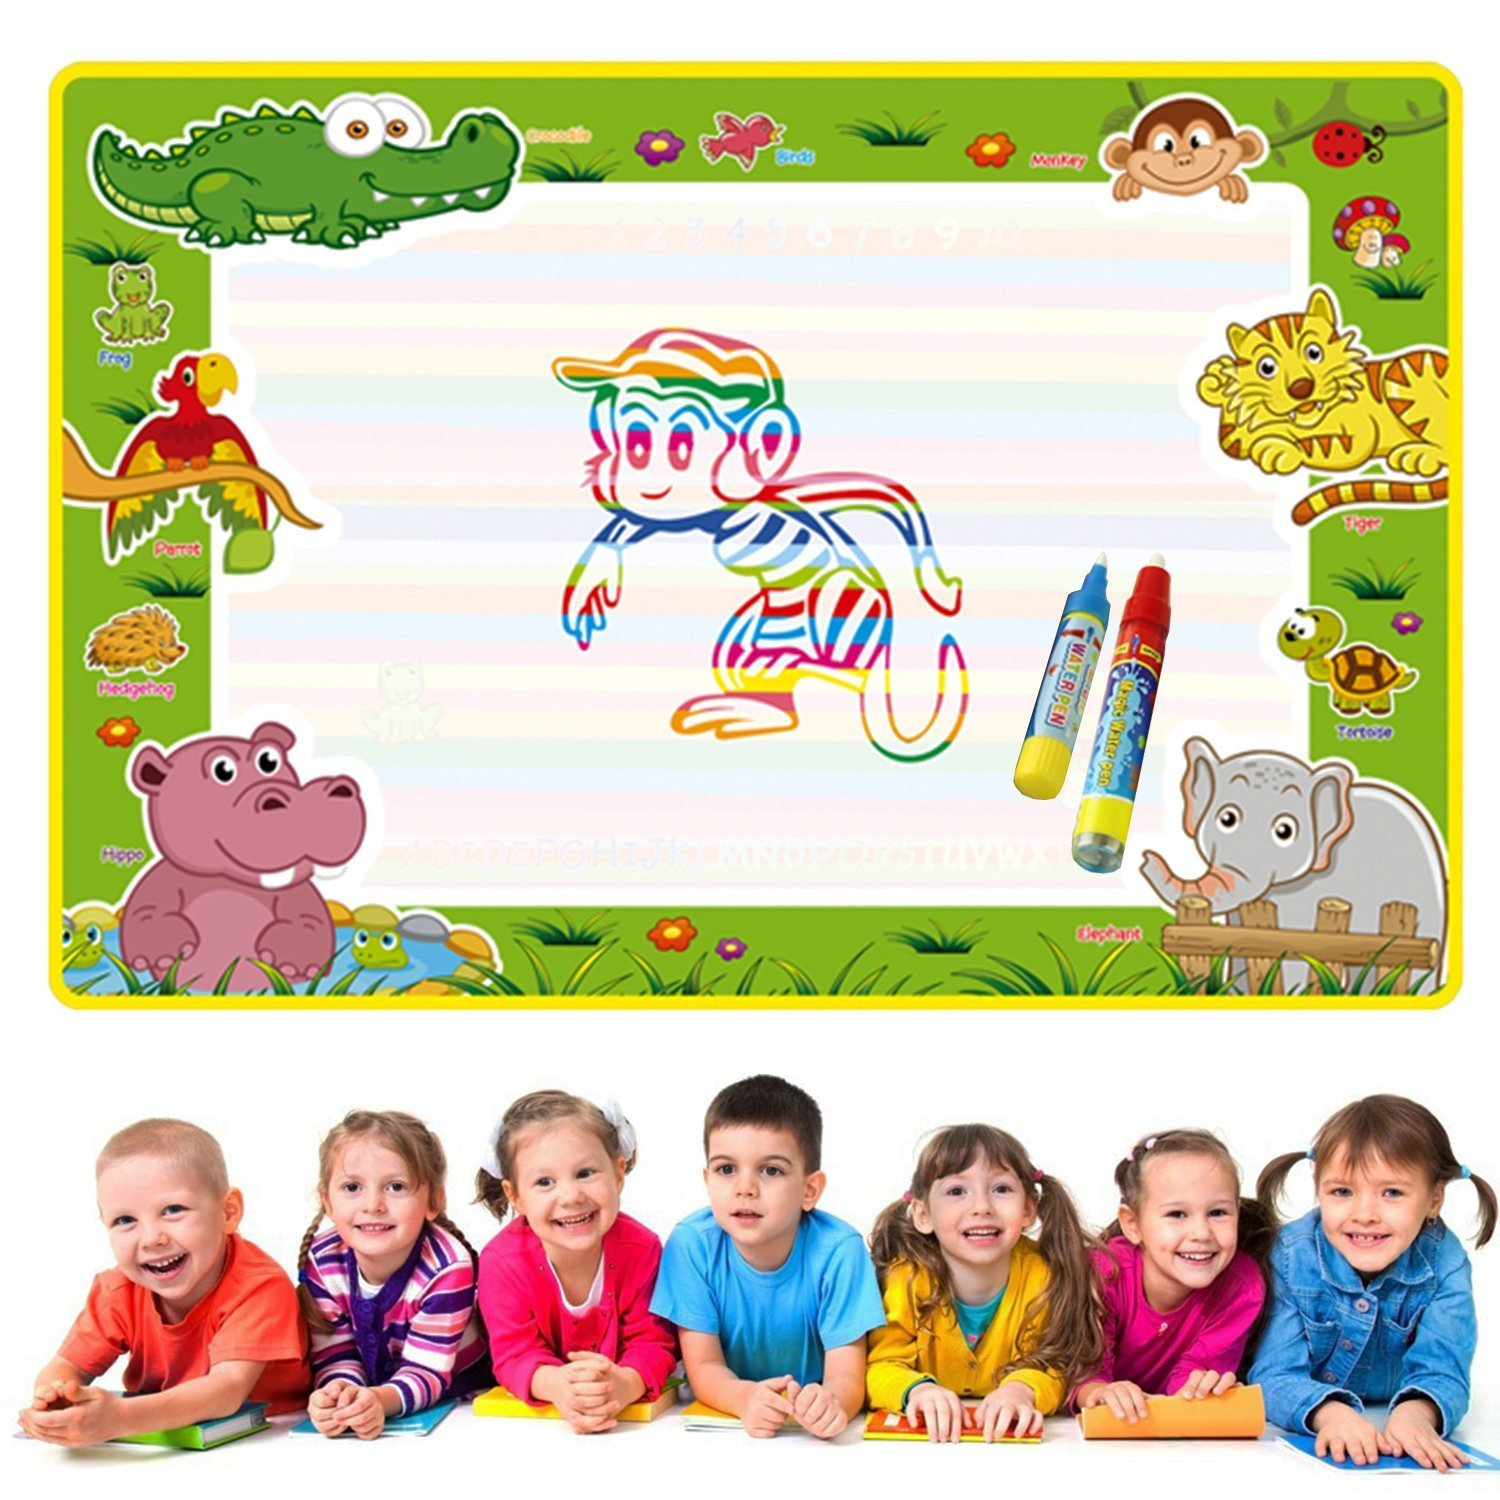 Dorras Large Aqua Doodle Mat, Magic Water Drawing Mat Painting Writing Doodle Pad Board & 2 Pen Develop Intelligence Learning Educational Toy Gift for Boys Girls Toddlers Kids Children 28.3'' x 18.9''